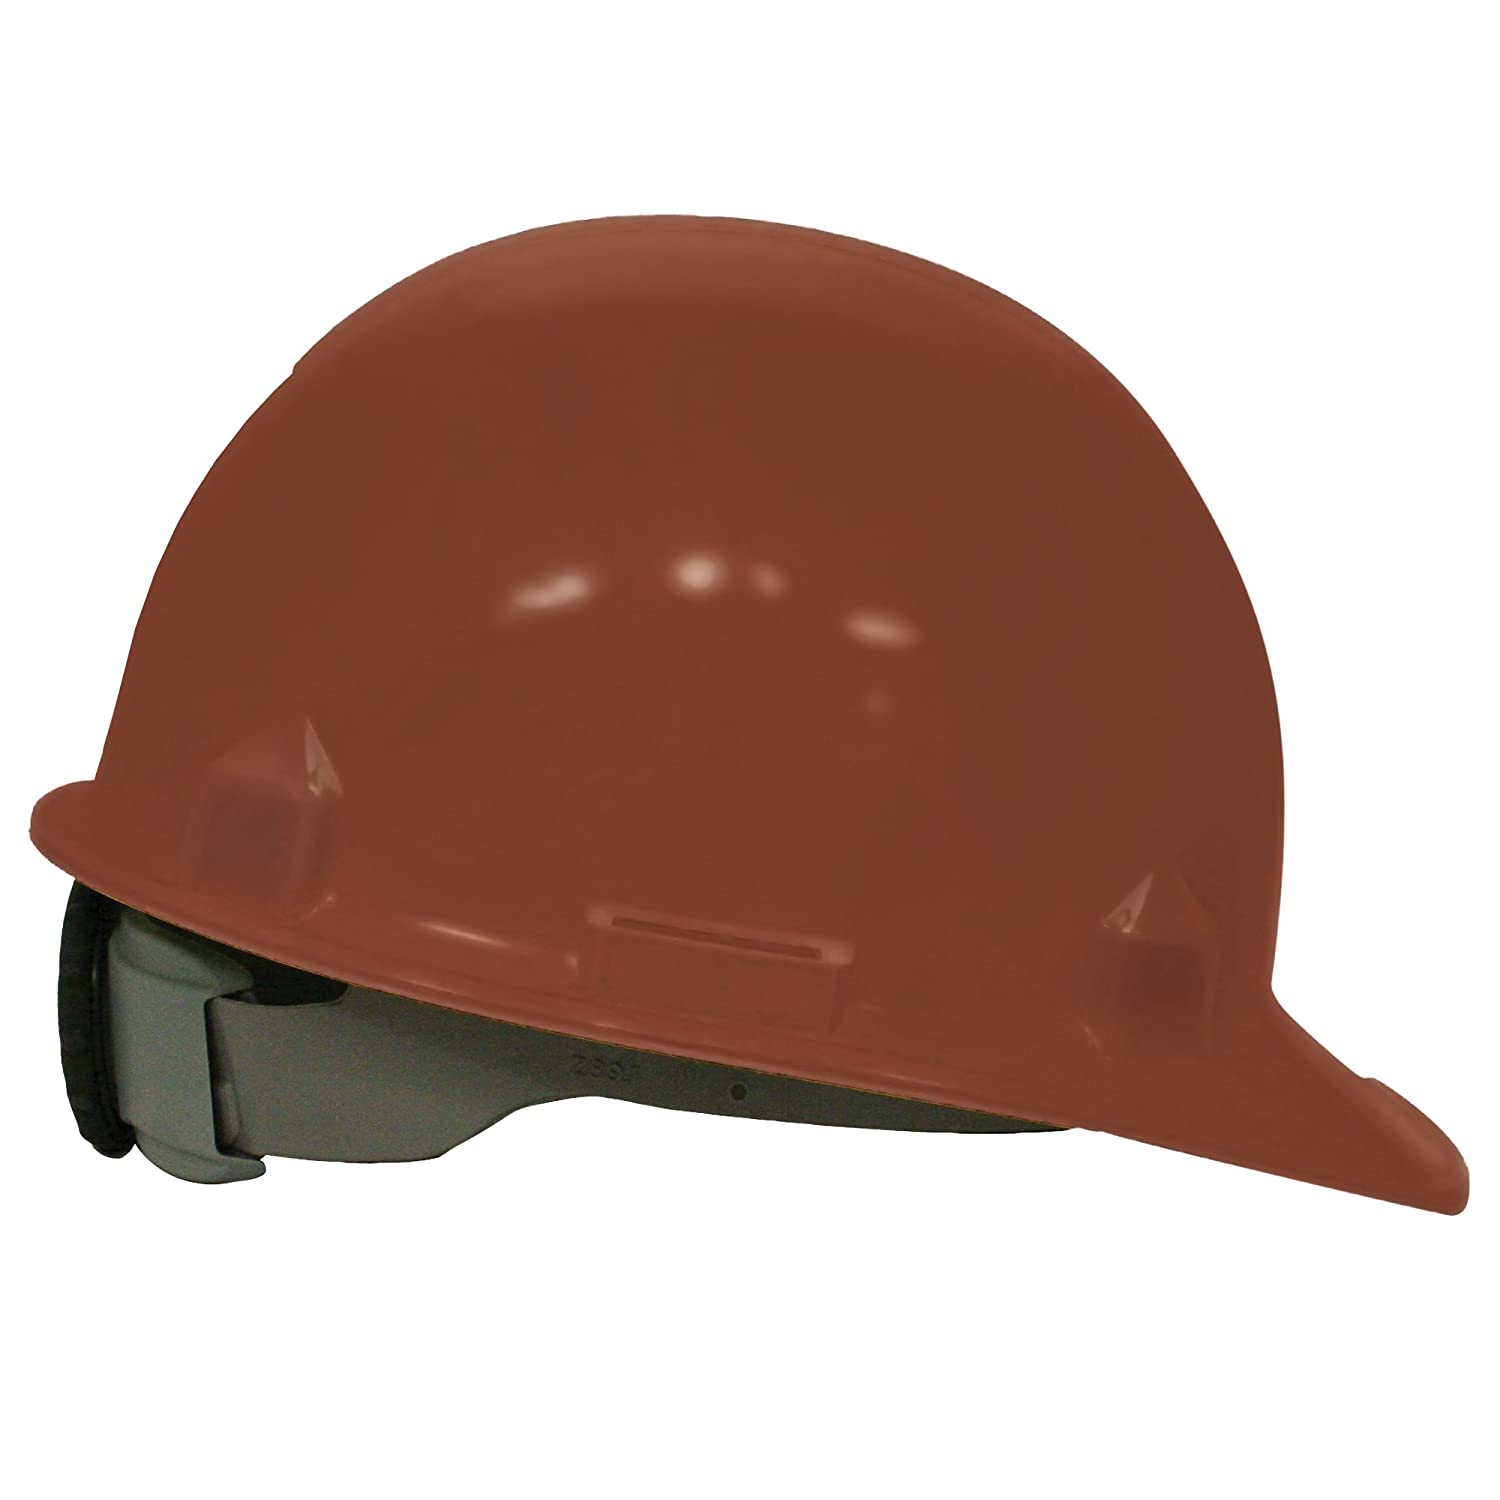 Jackson Safety 14836 SC-6 High Density Polyethylene Hard Hat with 4 Point Ratchet Suspension, Brown (Pack of 12) by Jackson Safety B008D7TMQ0